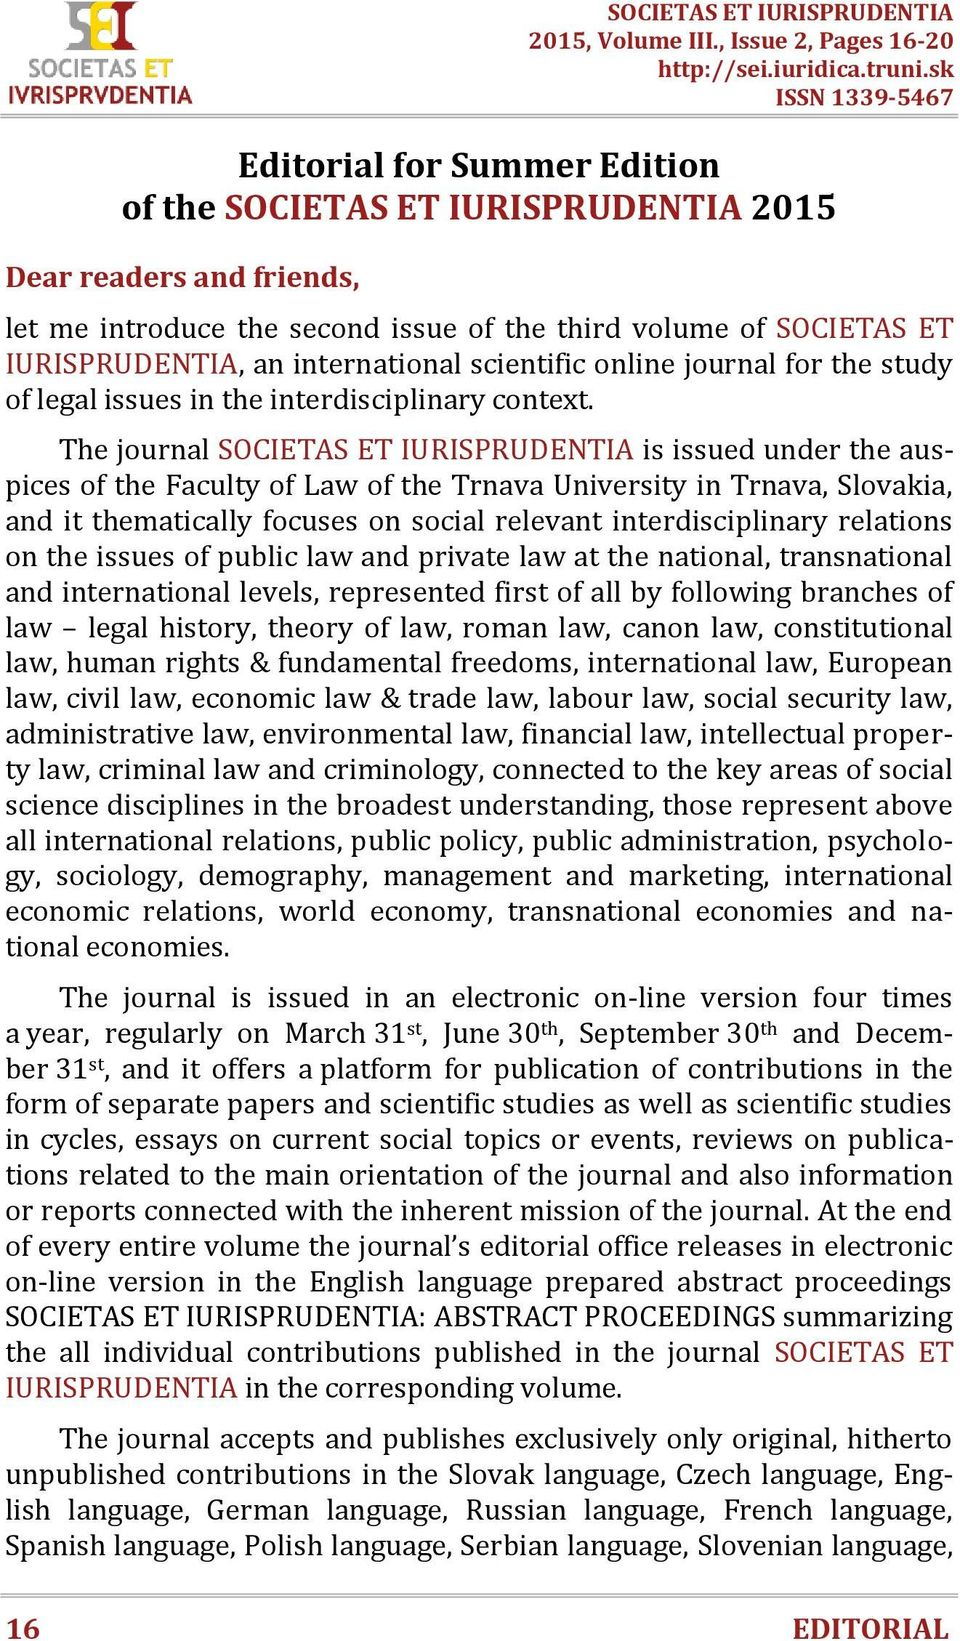 The journal SOCIETAS ET IURISPRUDENTIA is issued under the auspices of the Faculty of Law of the Trnava University in Trnava, Slovakia, and it thematically focuses on social relevant